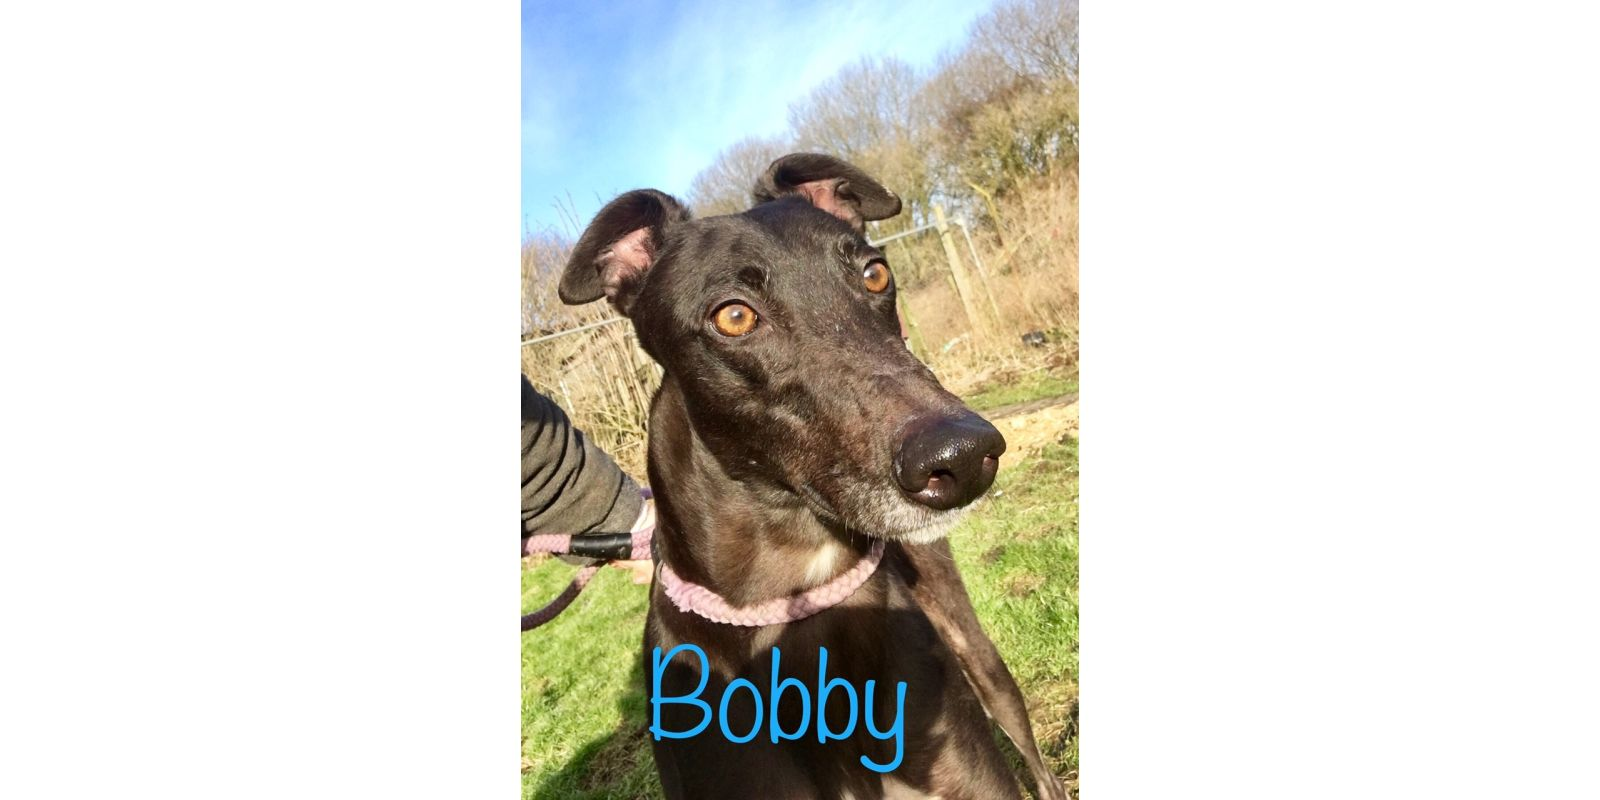 New dog listed for rescue at the West Scotland Retired Greyhound Trust - Bobby